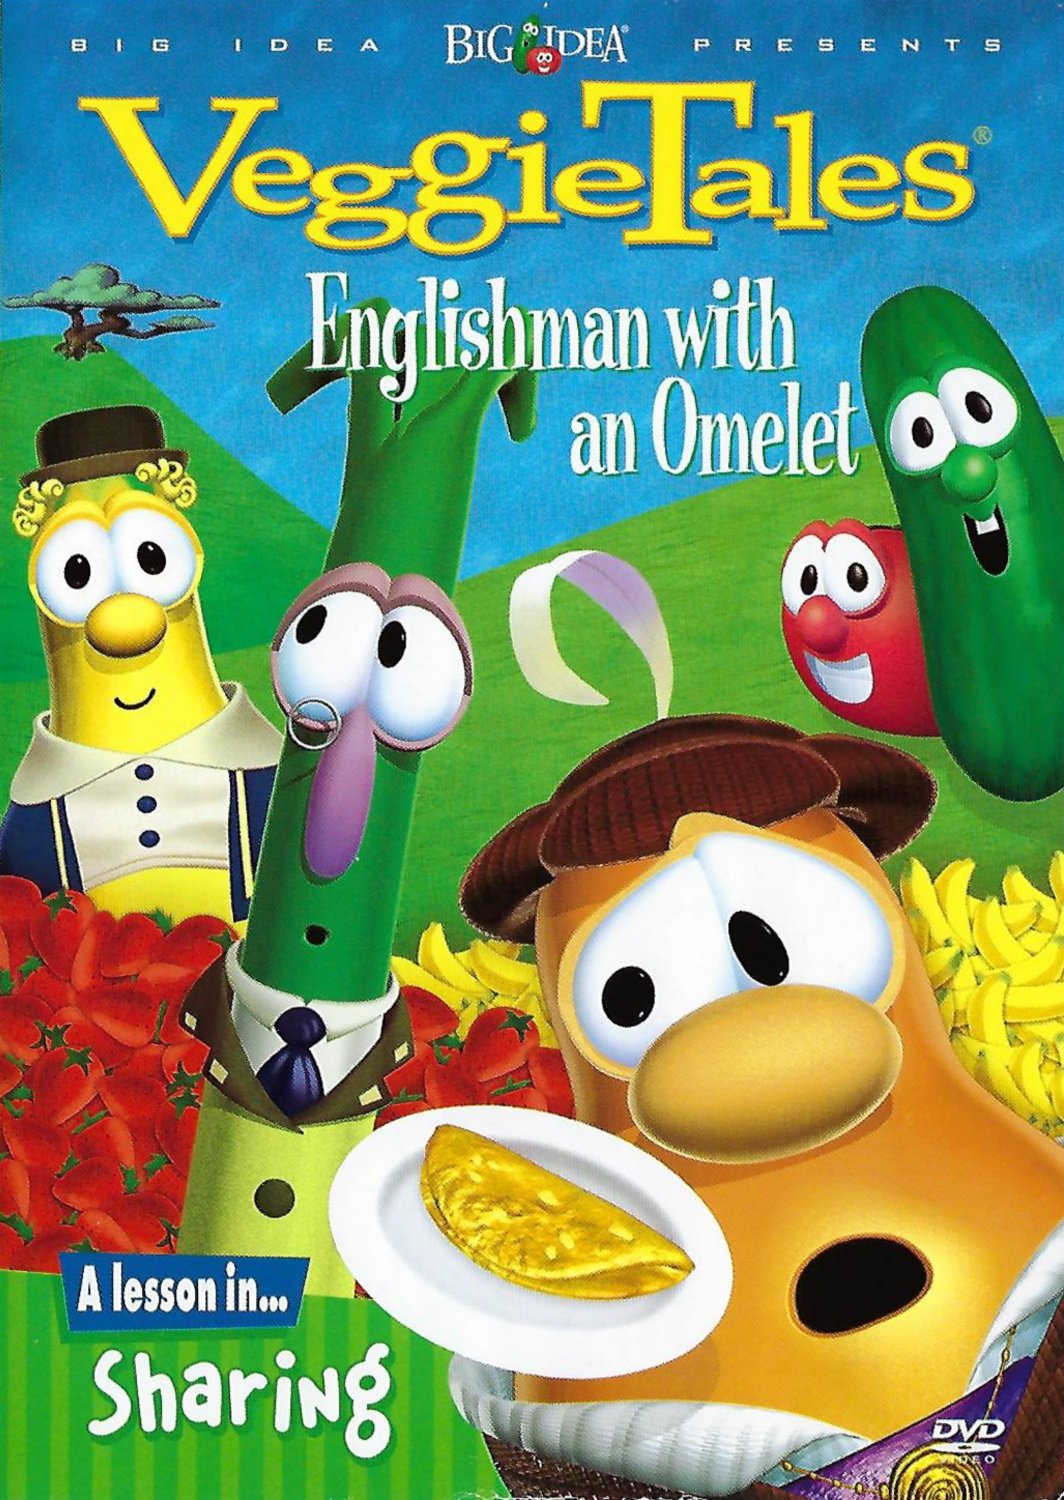 Englishman with an Omelet